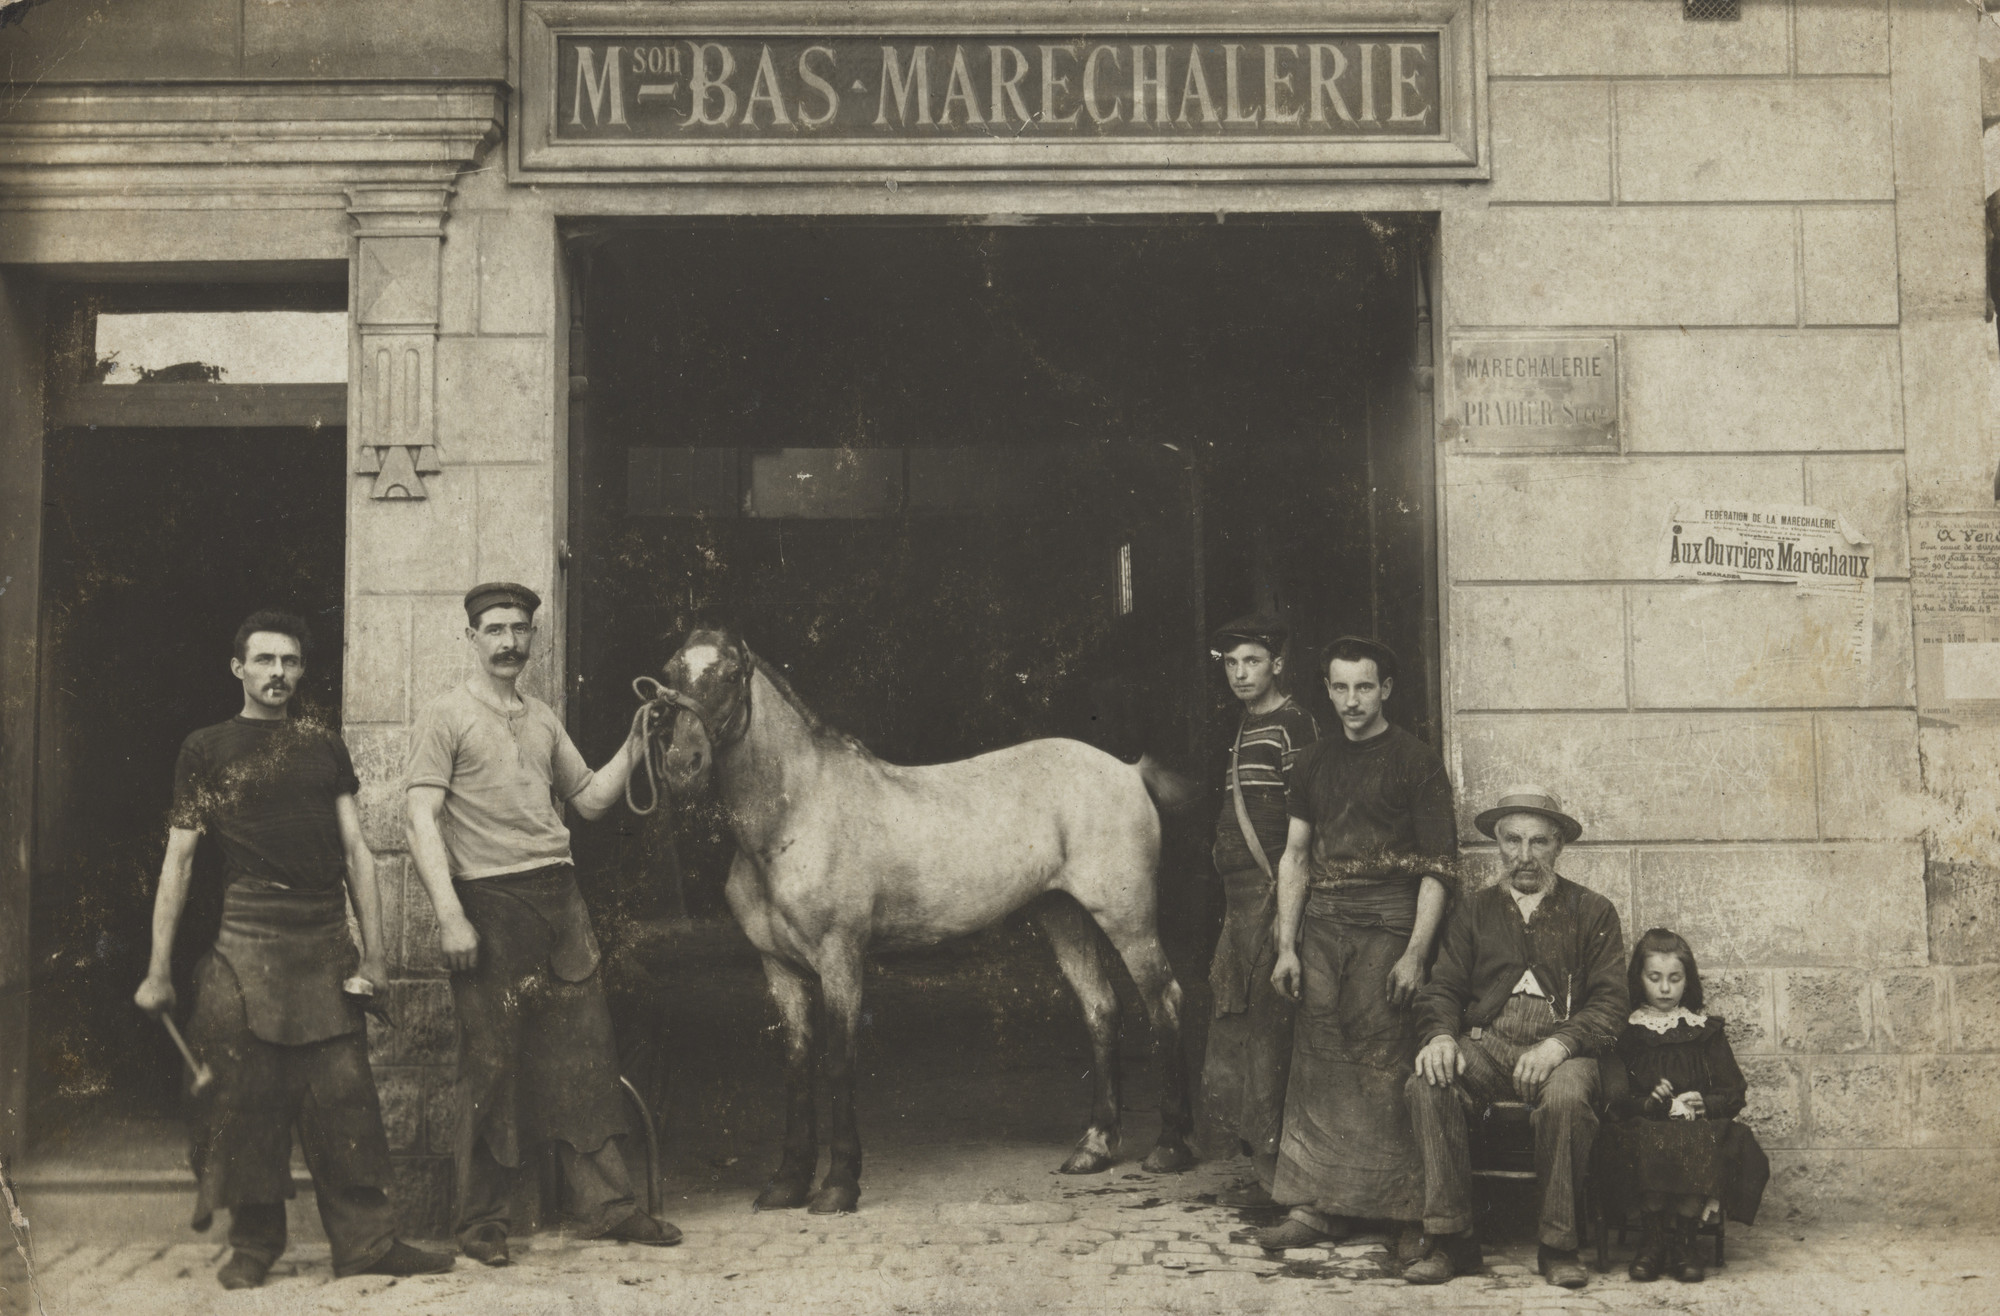 Unknown photographer. Mson Bas, Maréchalerie Pradier successeur, Plaque Guilleminot, Clermont-Ferrand. c. 1907